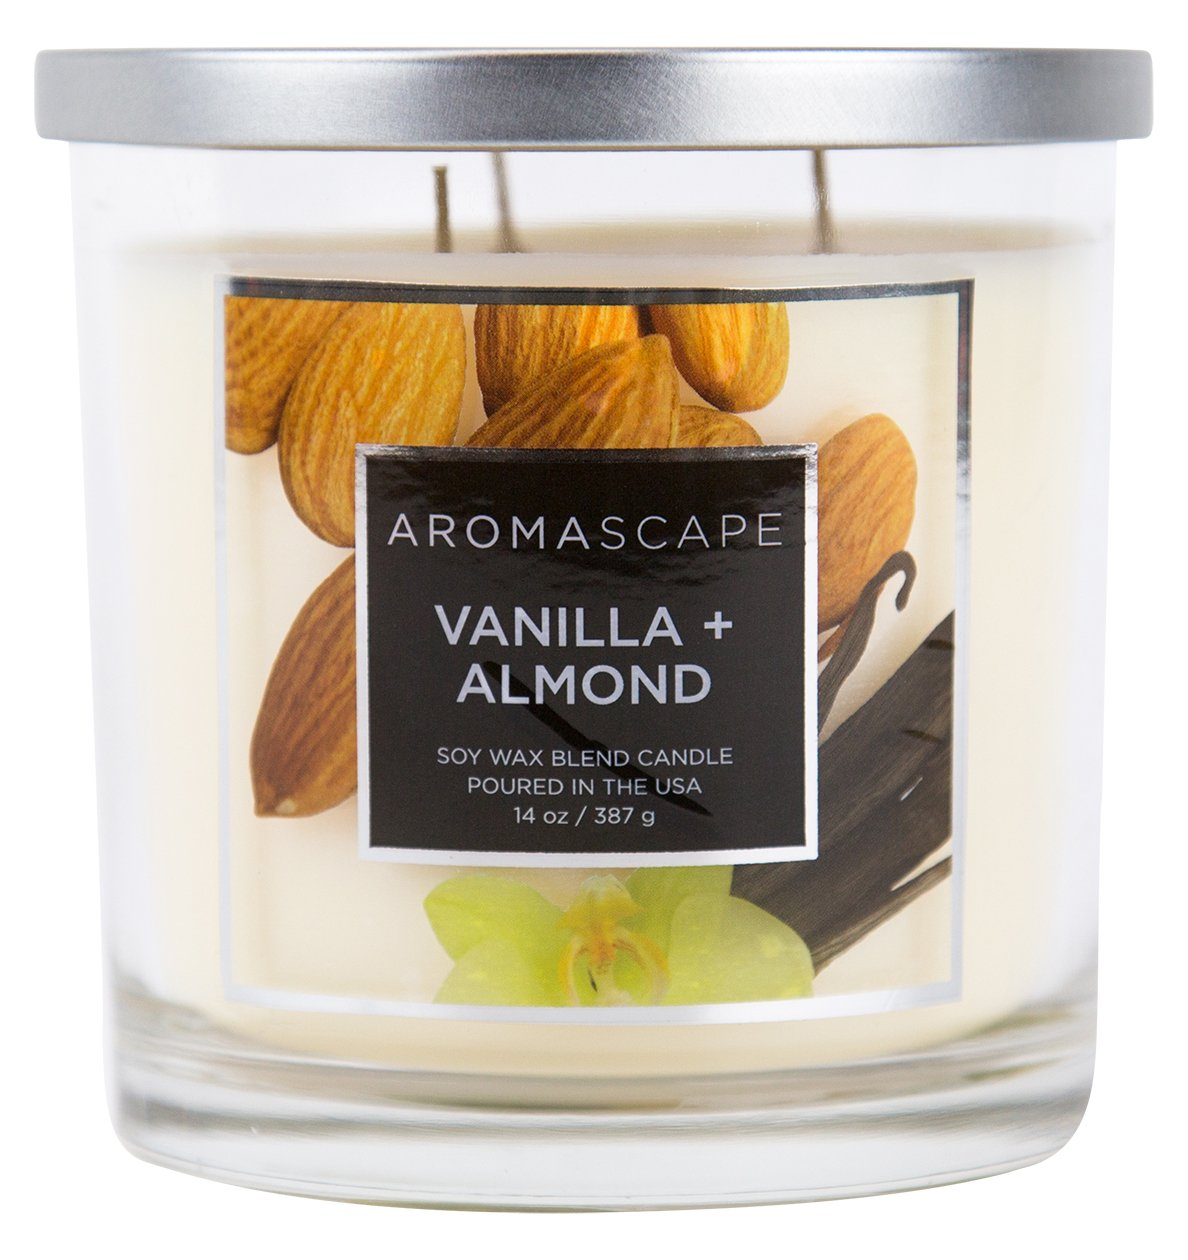 Aromascape 3-Wick Scented Jar Candle, Lavender and Vanilla, Single Chesapeake Bay Candle PT40498